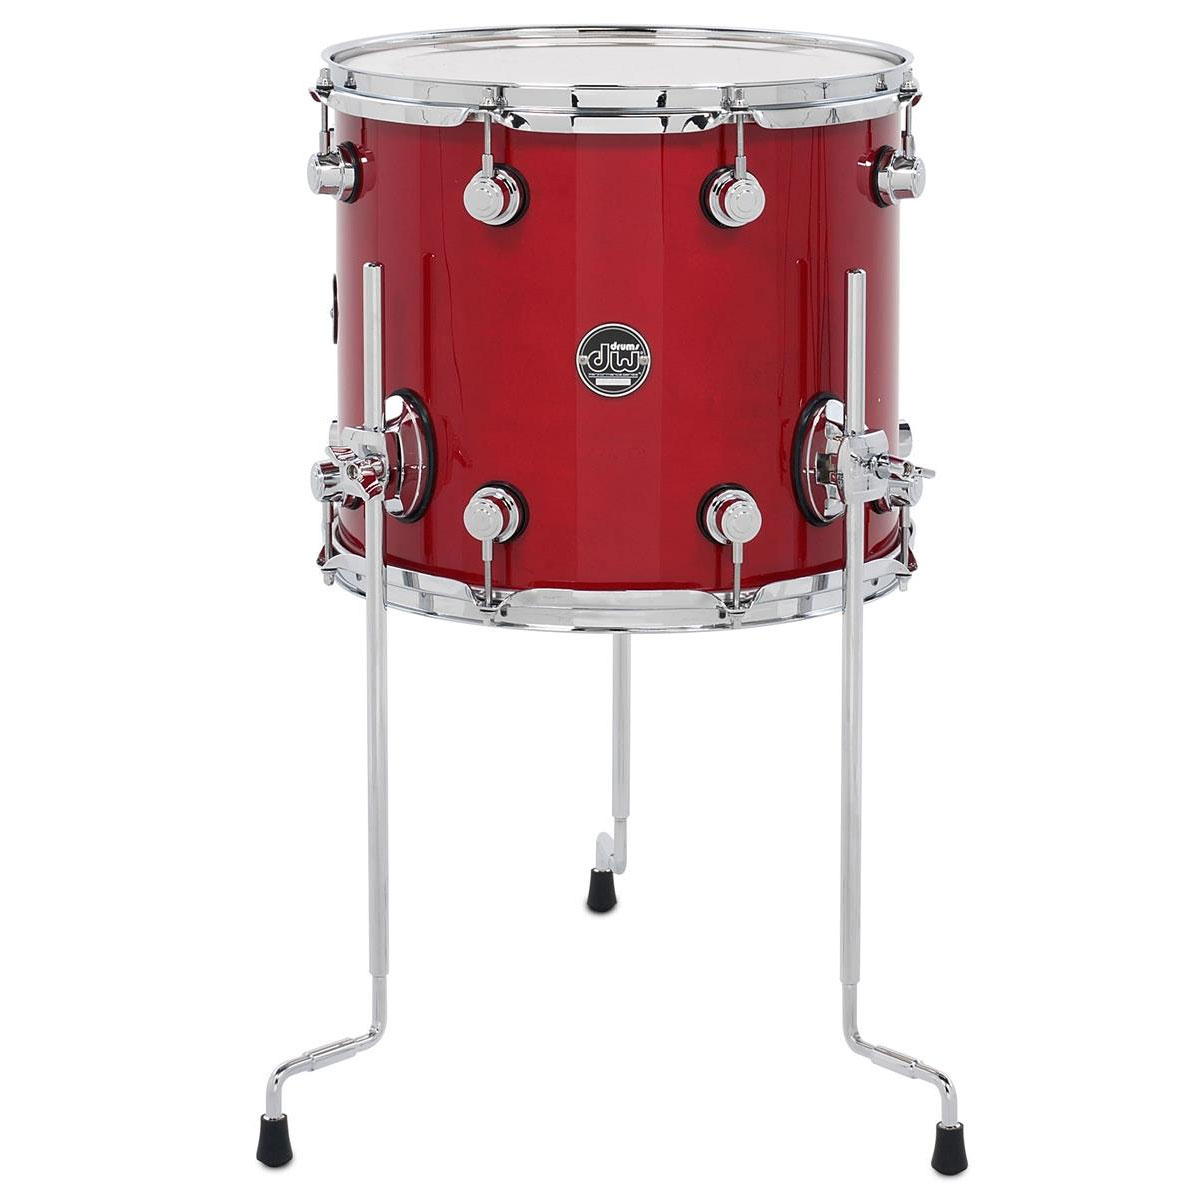 "DW 12"" (Deep) x 14"" (Diameter) Performance Floor Tom"